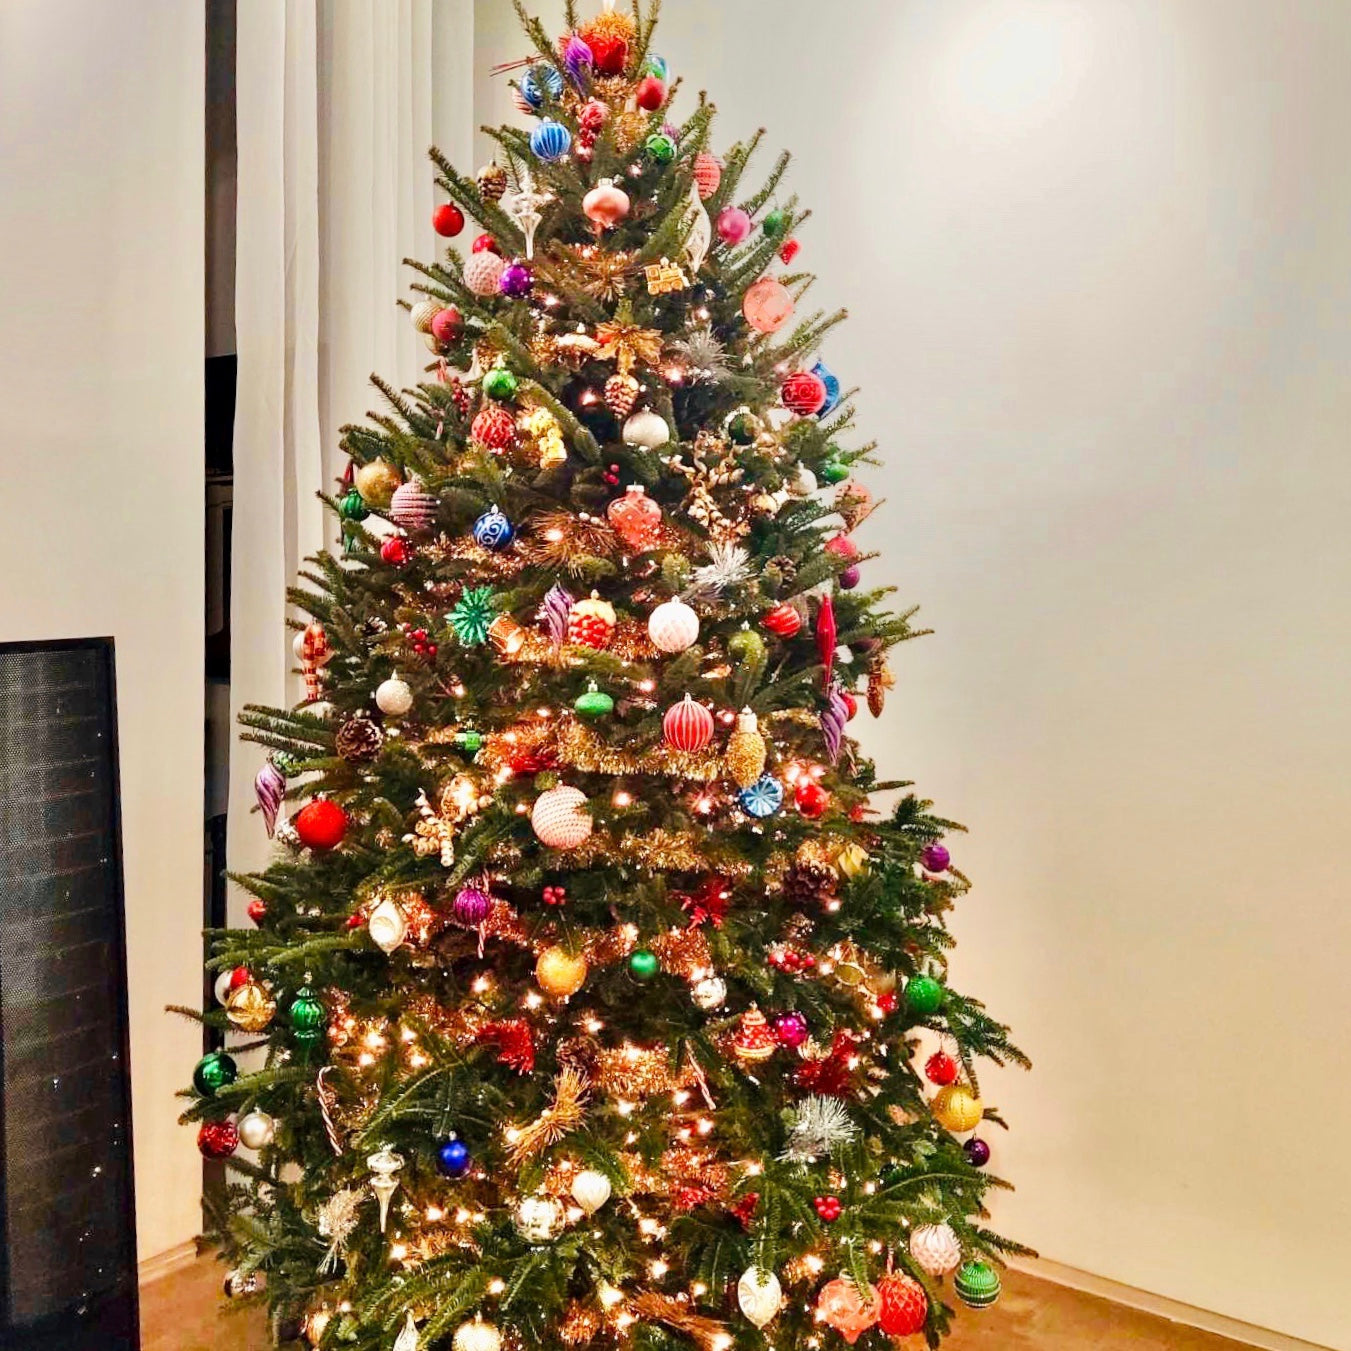 Decorated fresh-cut Fraiser Fir Christmas tree in residential living room